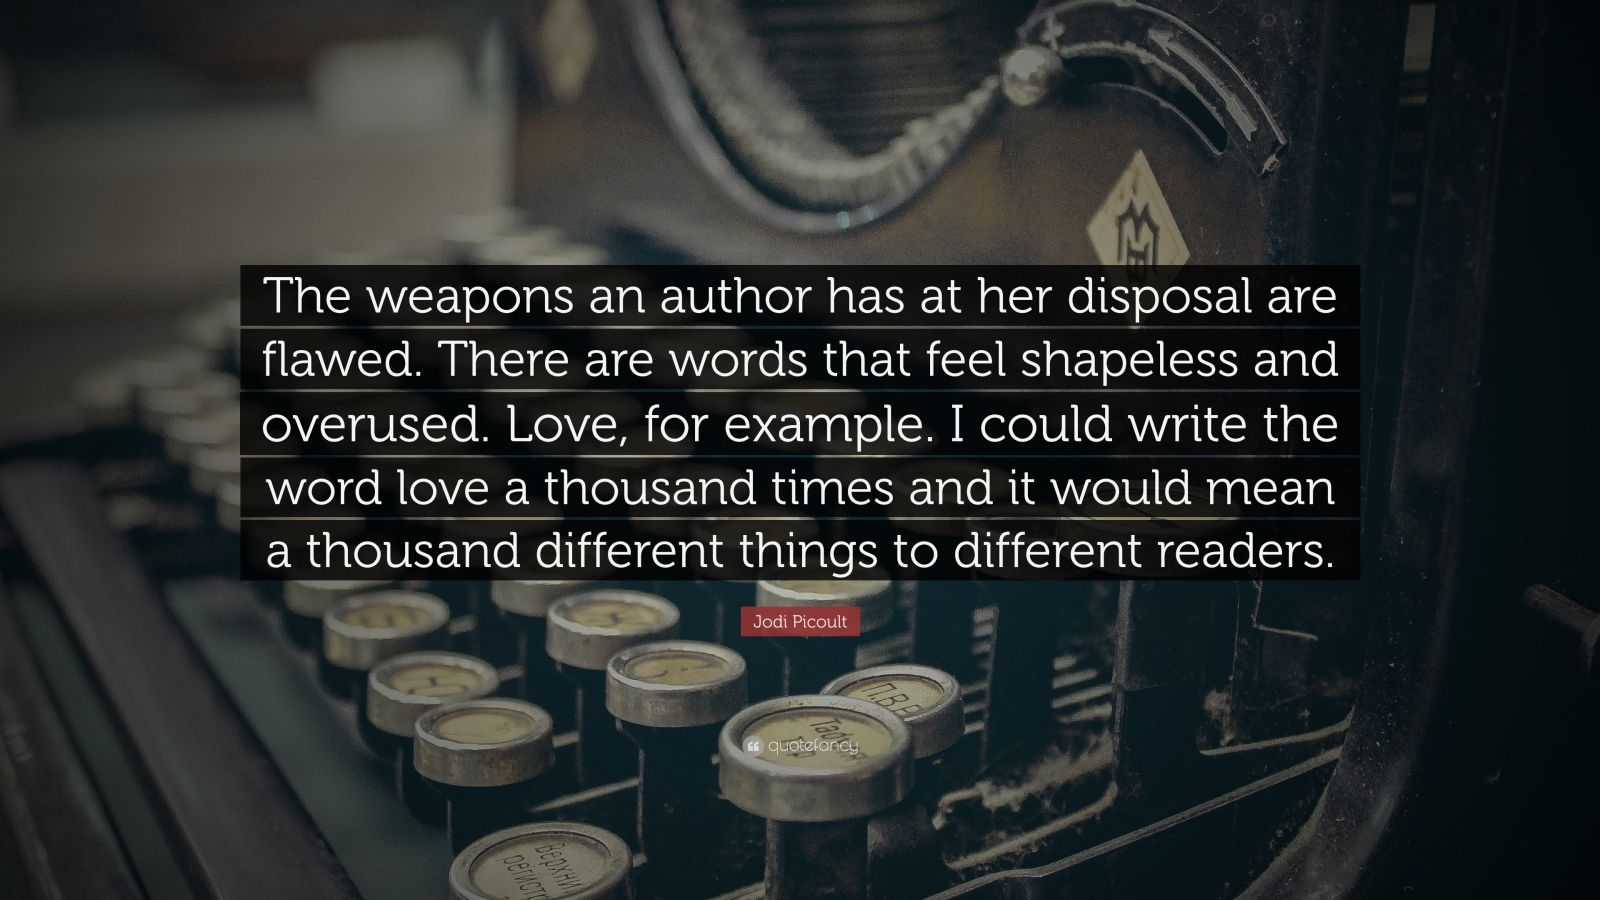 """Jodi Picoult Quote: """"The weapons an author has at her disposal are flawed. There are words that feel shapeless and overused. Love, for example. I could write the word love a thousand times and it would mean a thousand different things to different readers."""""""